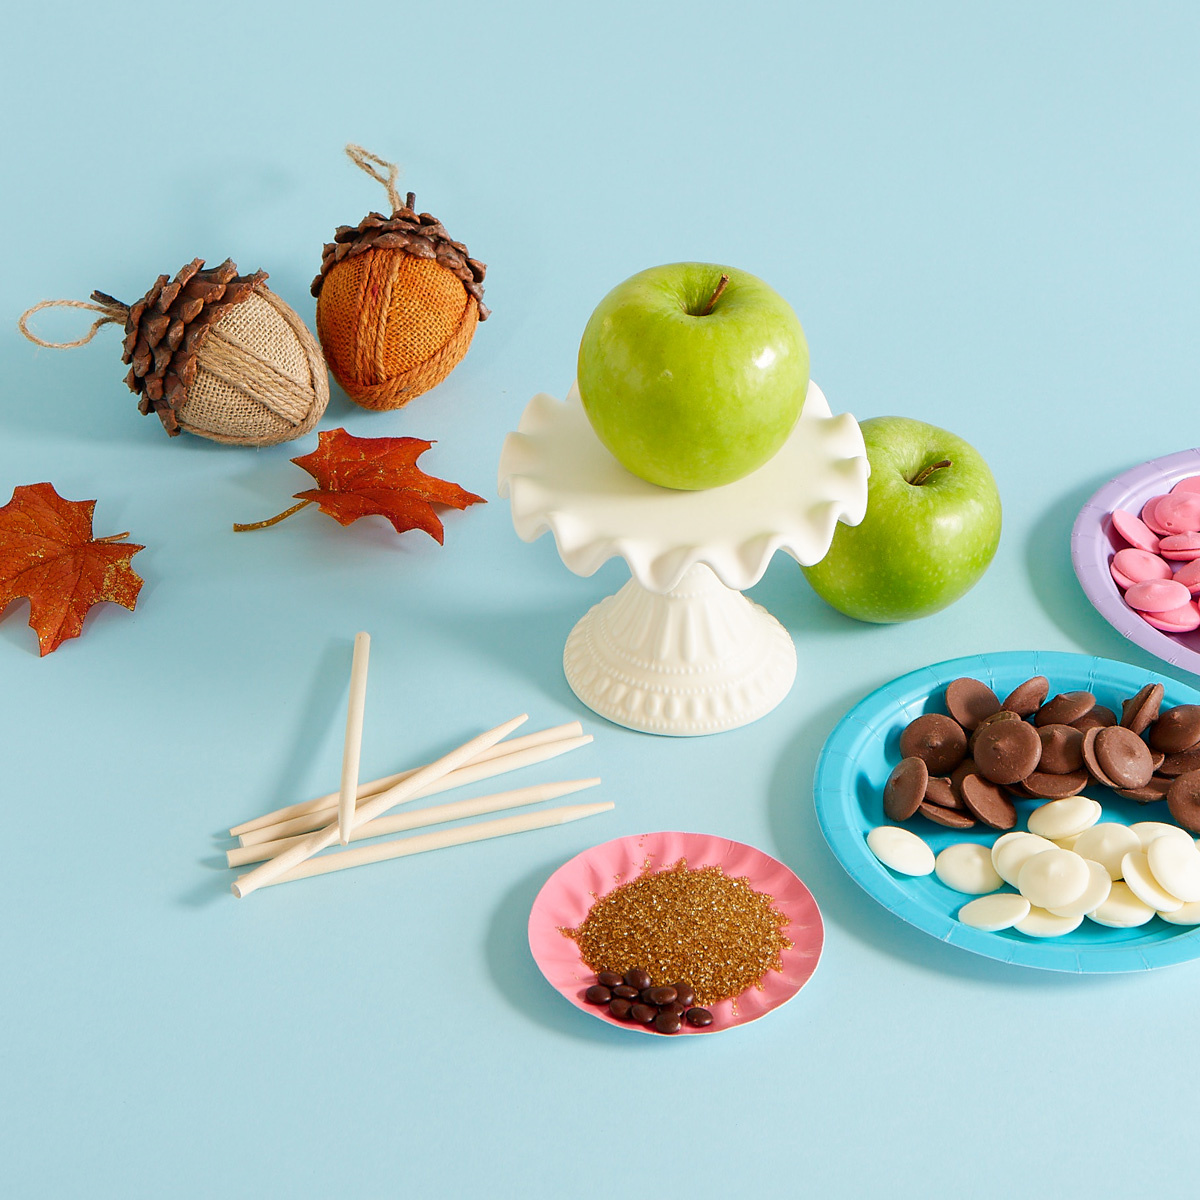 DIY Nick Jr. Candy Apples